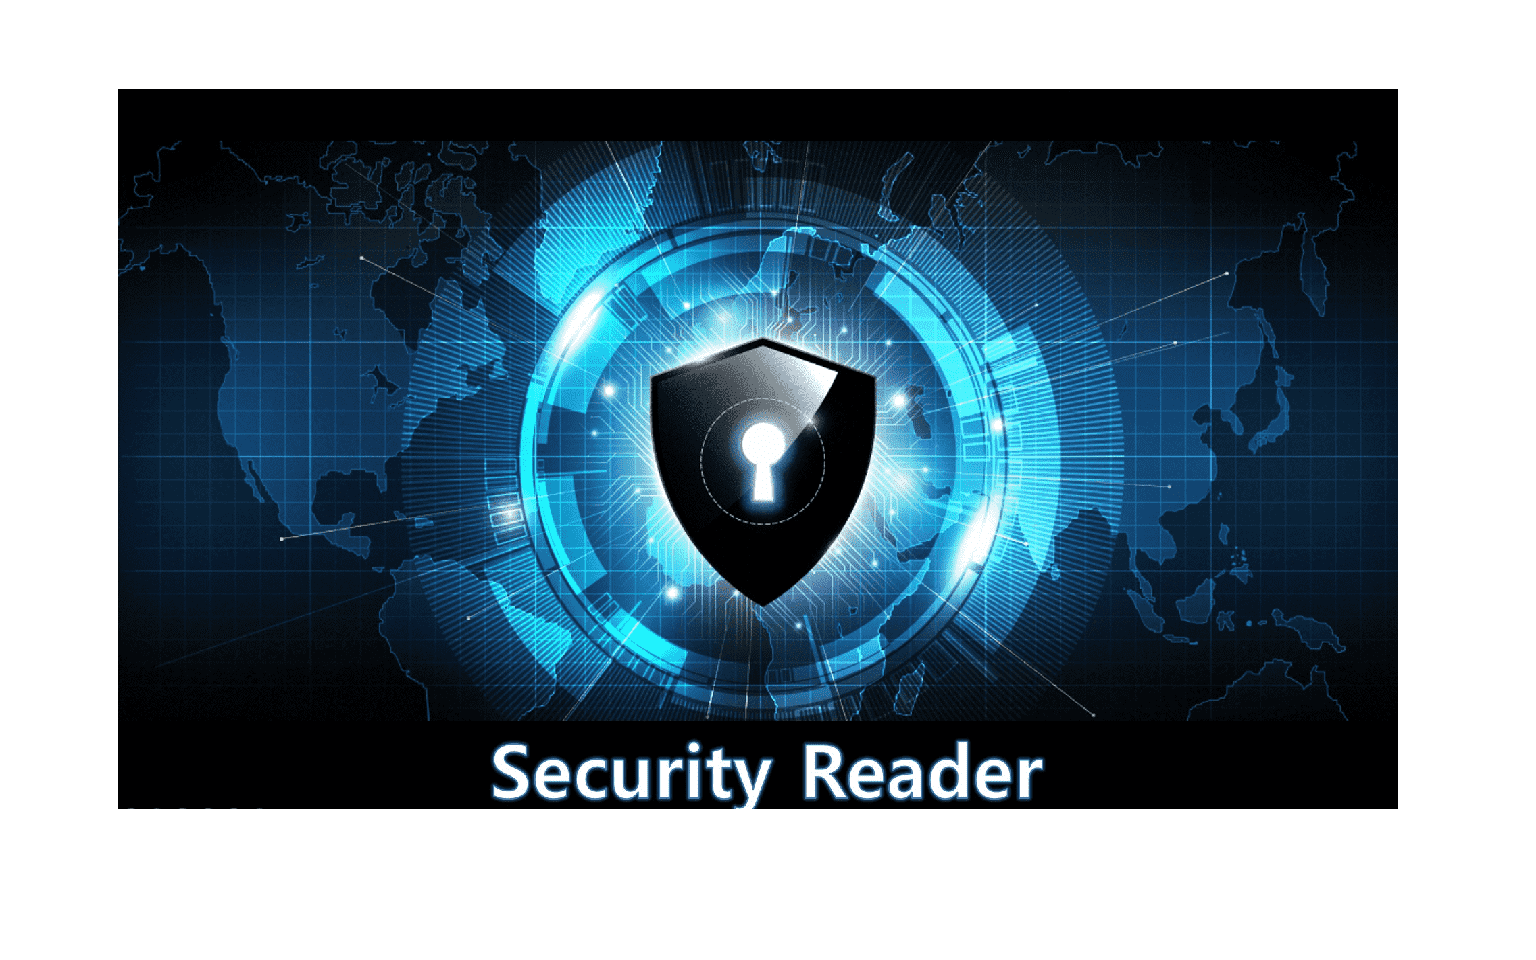 Security Reader의 썸네일